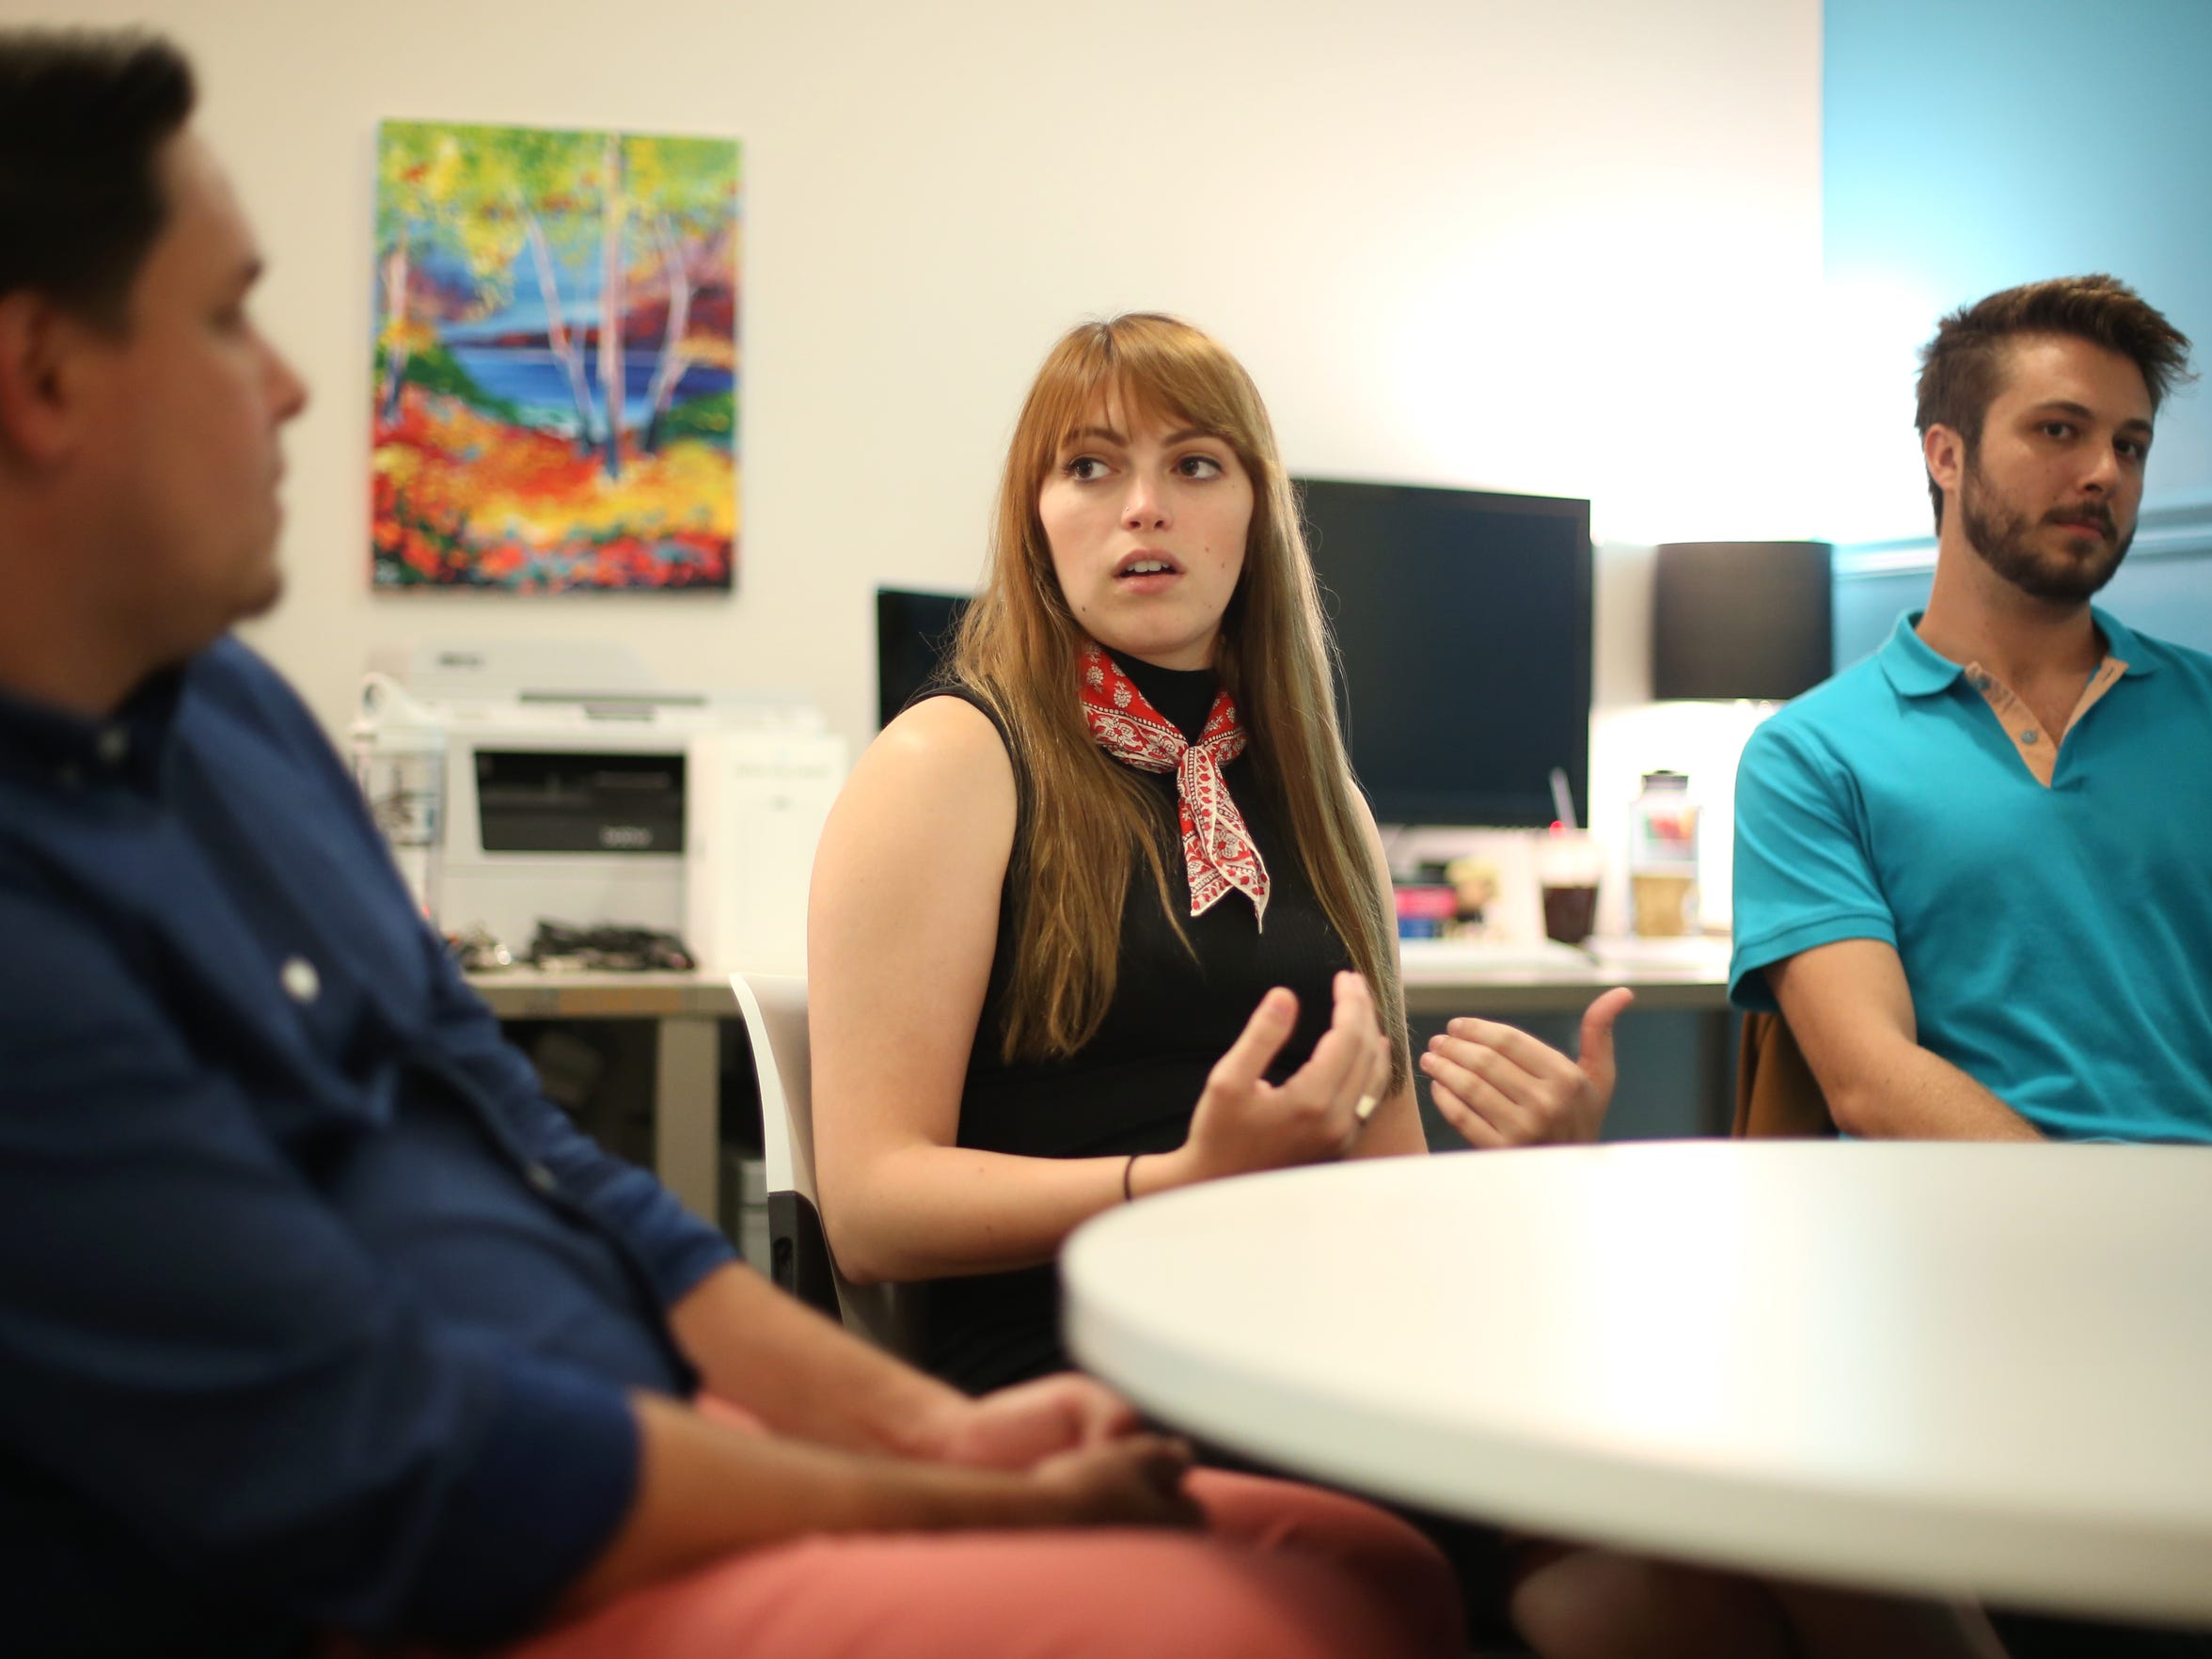 Frank Valcarcel, from left, Emily Morehouse and Nick